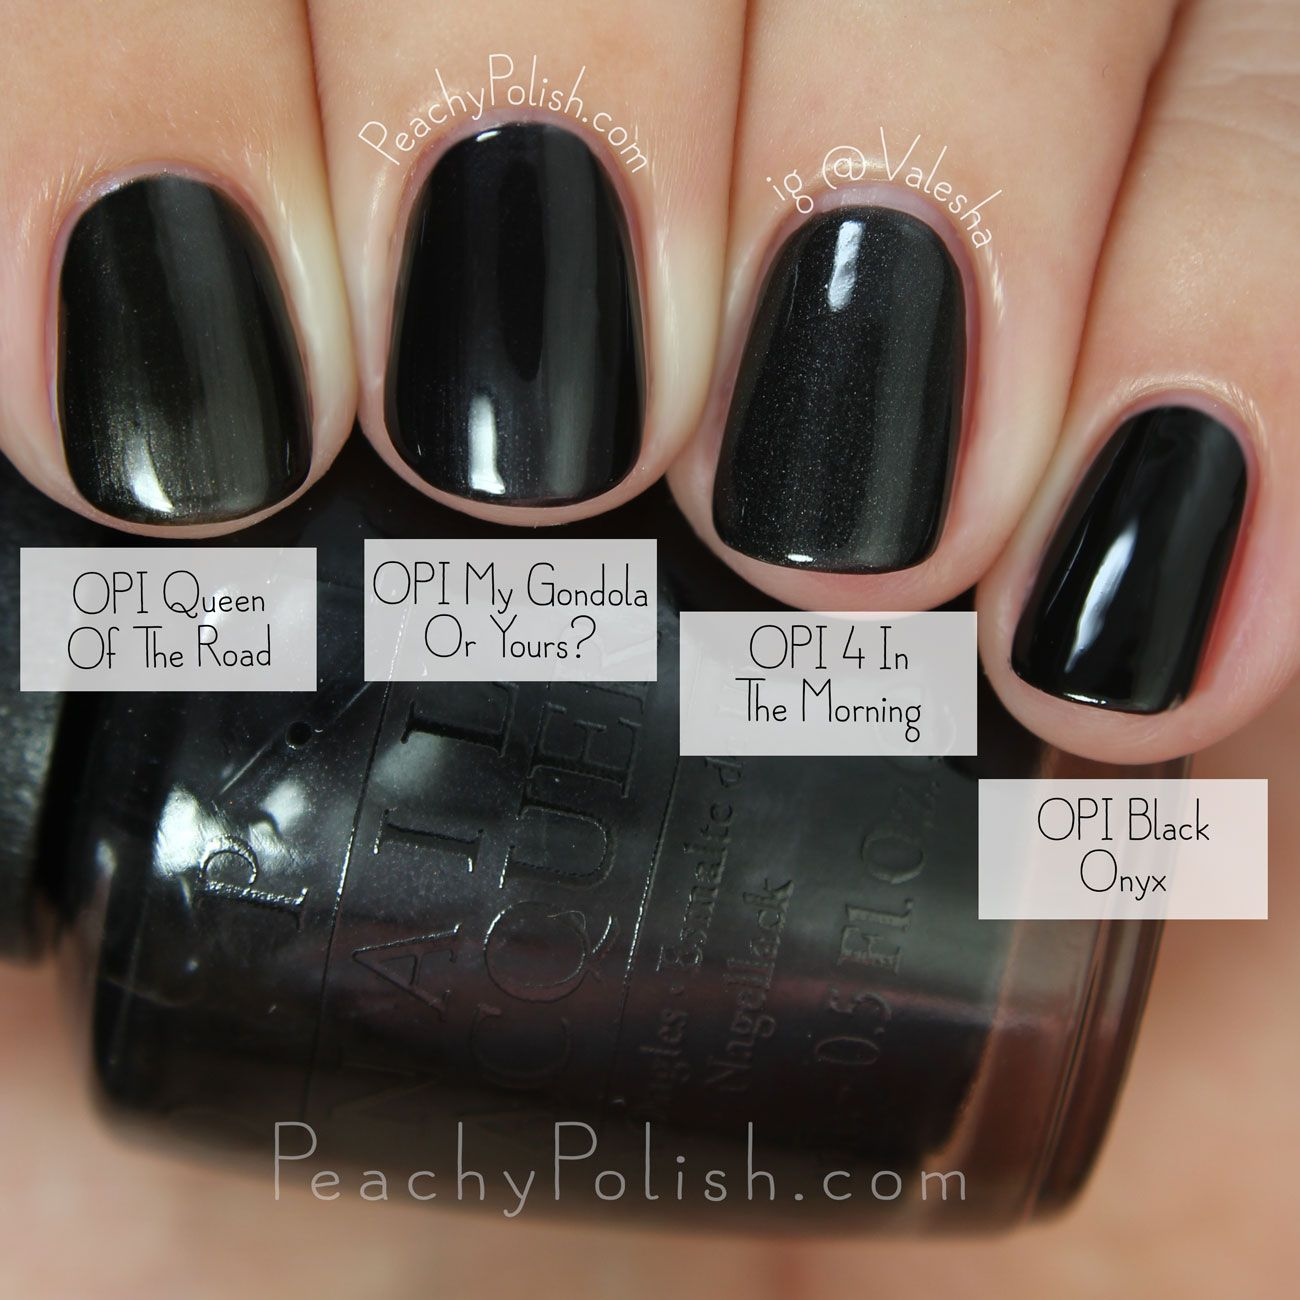 OPI My Gondola Or Yours? Comparison | Fall 2015 Venice Collection ...